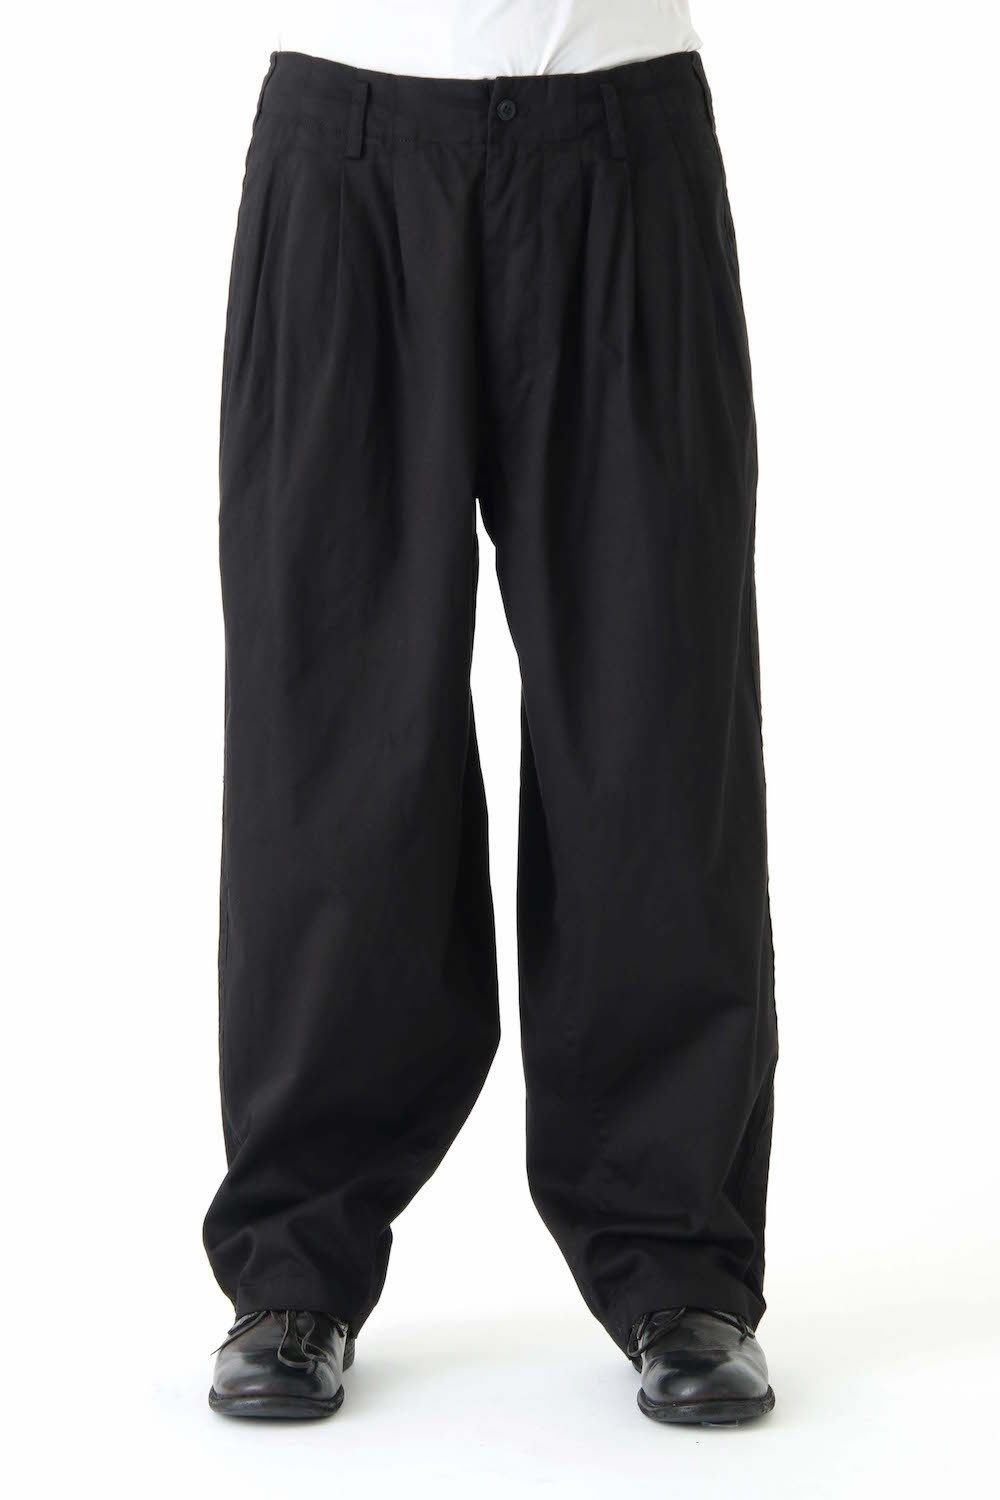 Product Dyed 3 Tuck Pants